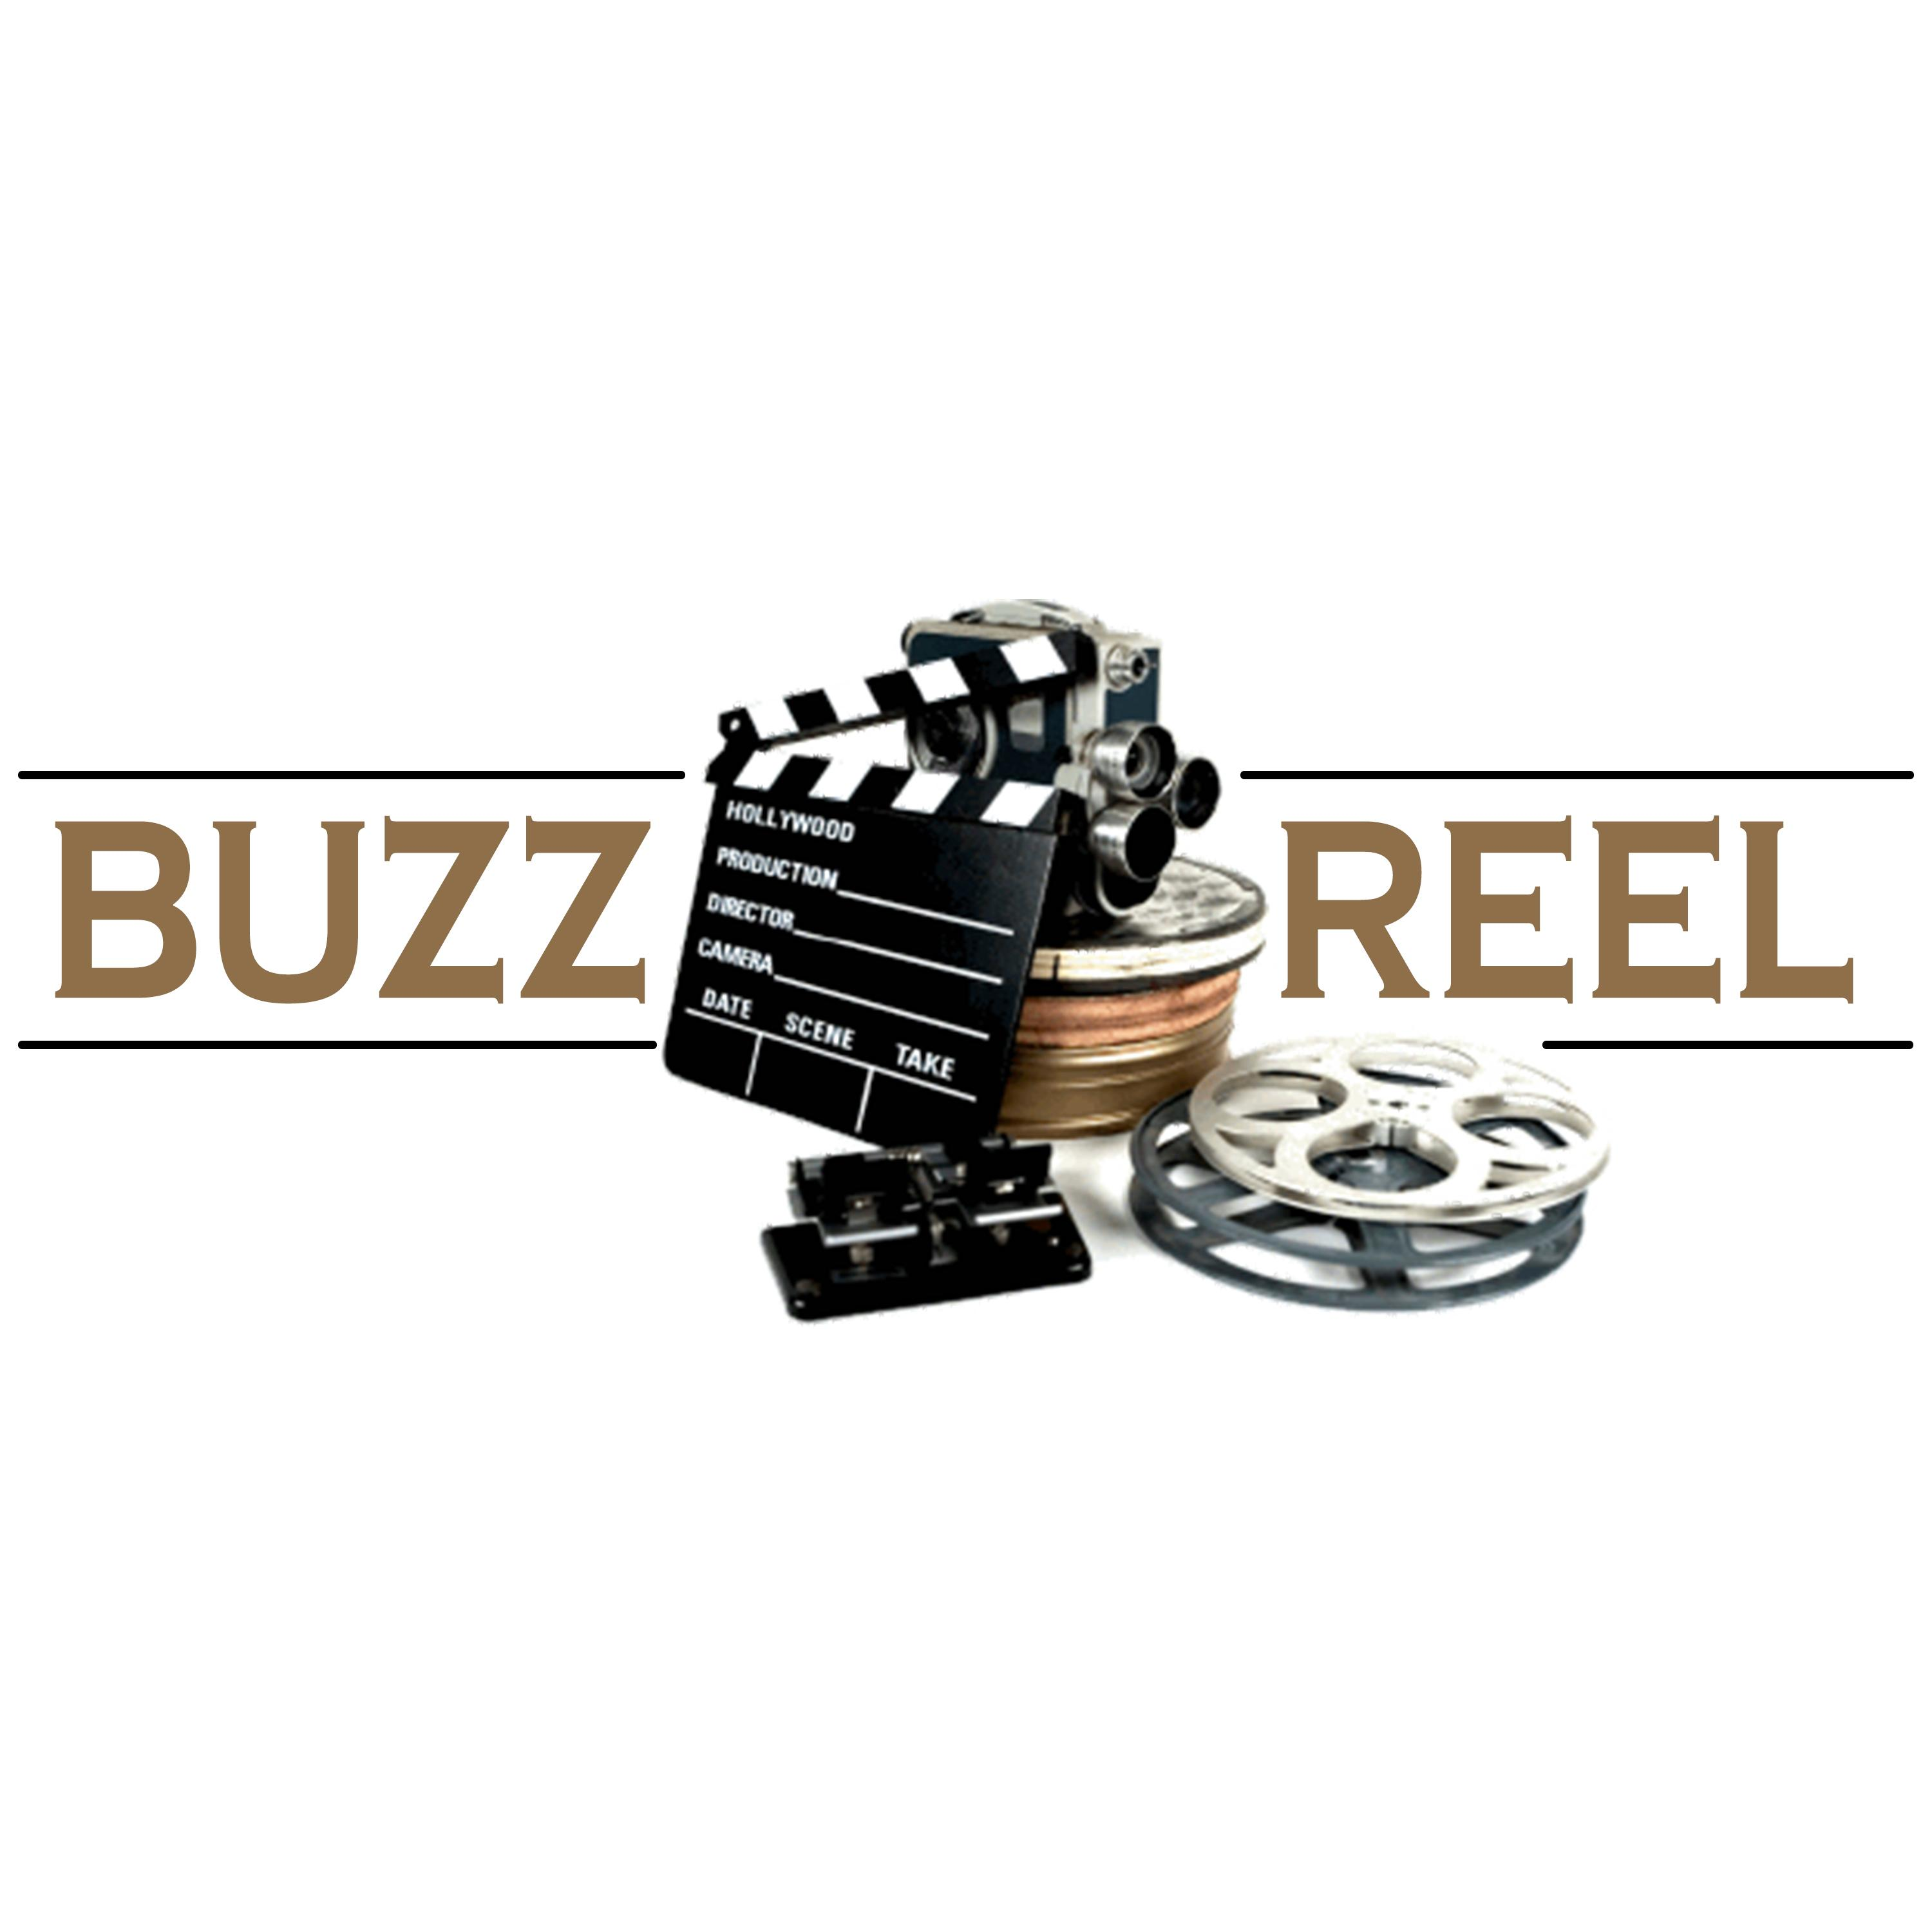 Buzz Reel Live! @ Yards Brewing Co.